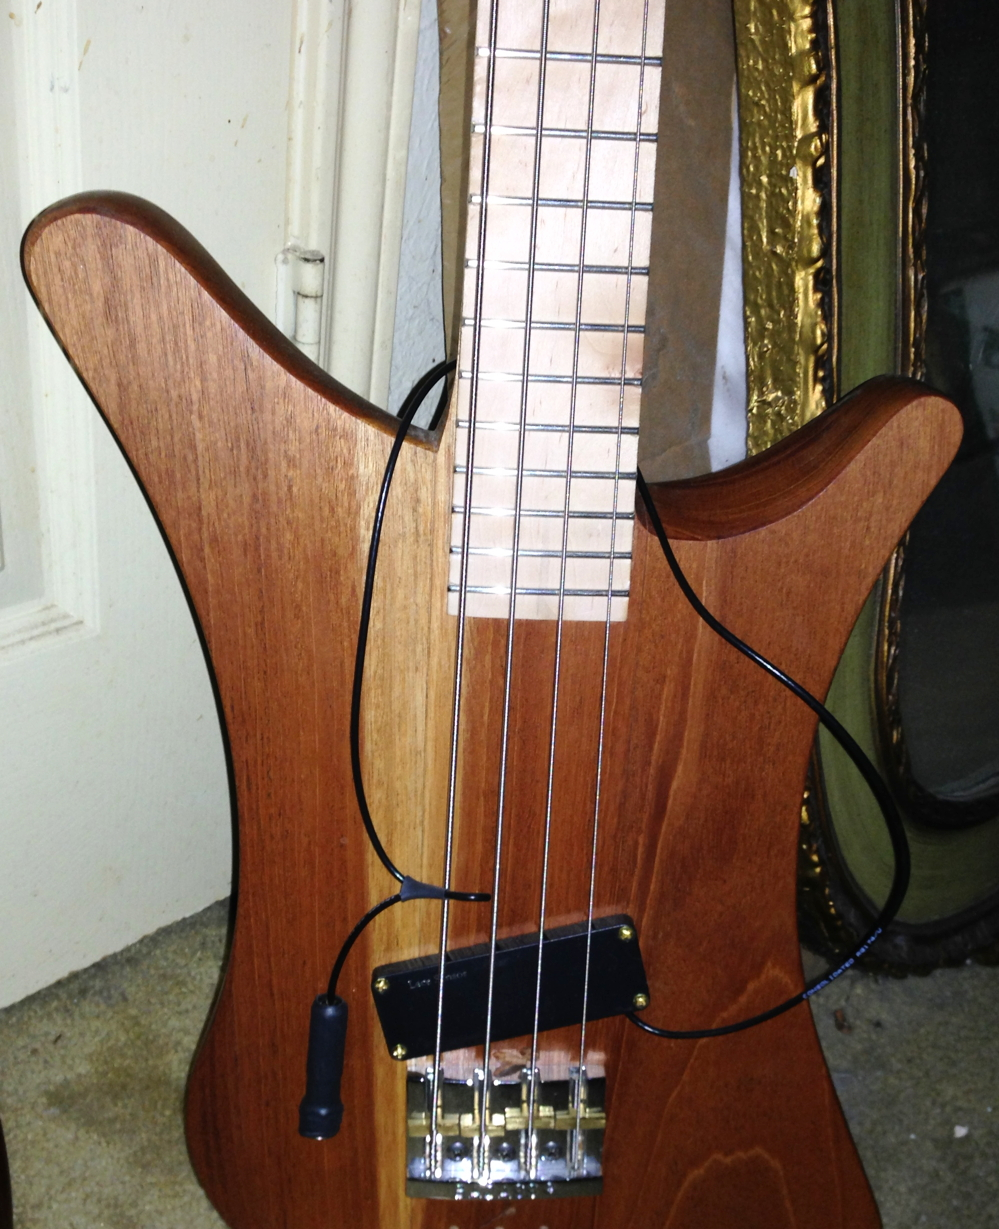 Lace Pickup Wiring Bass Showing Sensor Solidly Attached With Brass Screws And Pickups Cable Jack